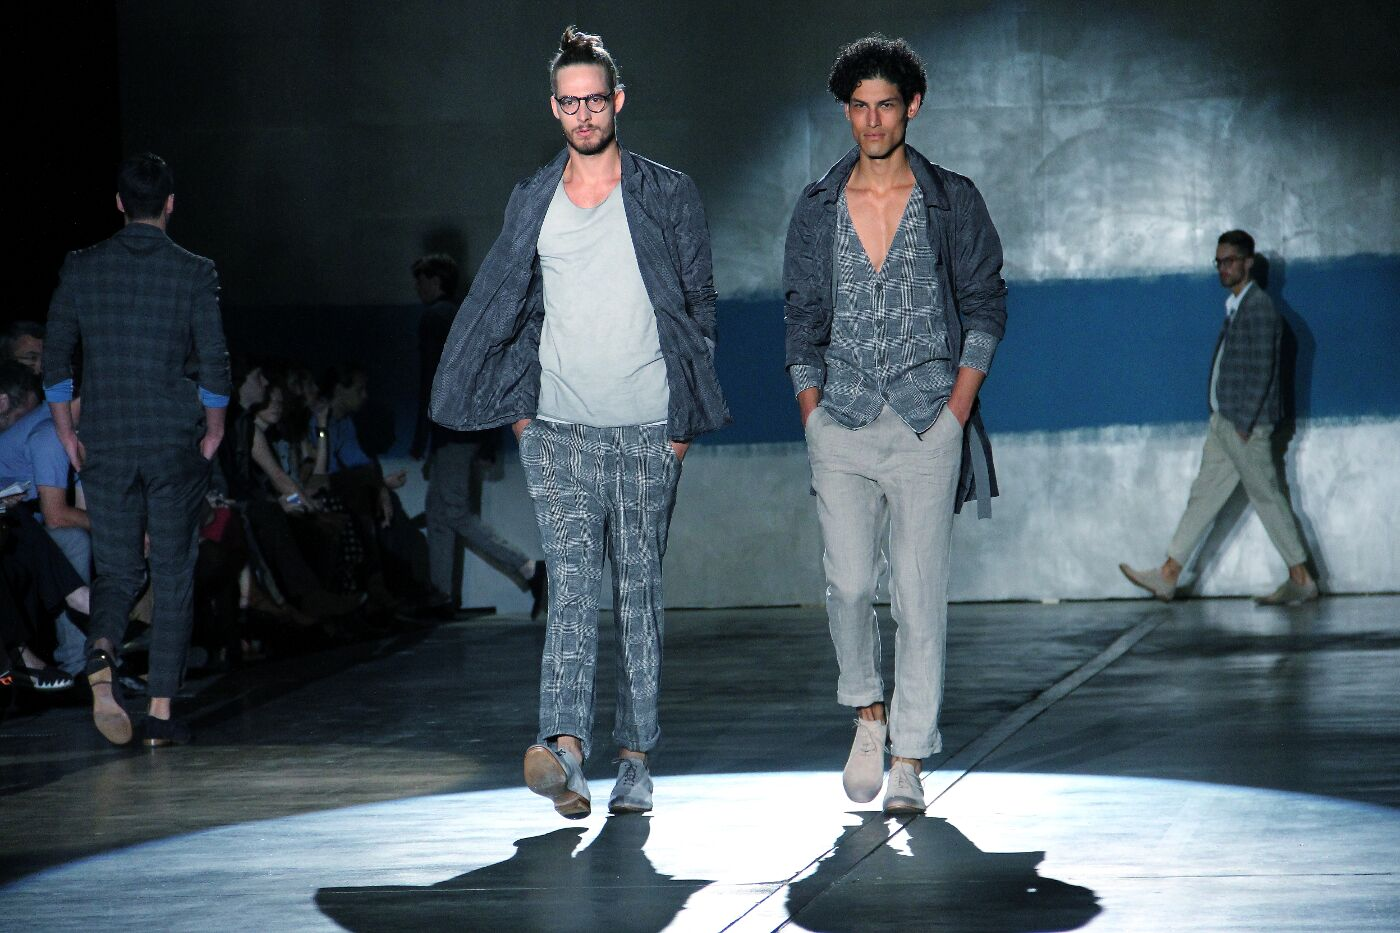 iceberg-spring-summer-2012-men-collection-milano-fashion-week-2012-iceberg-primavera-estate-catwalk-2012